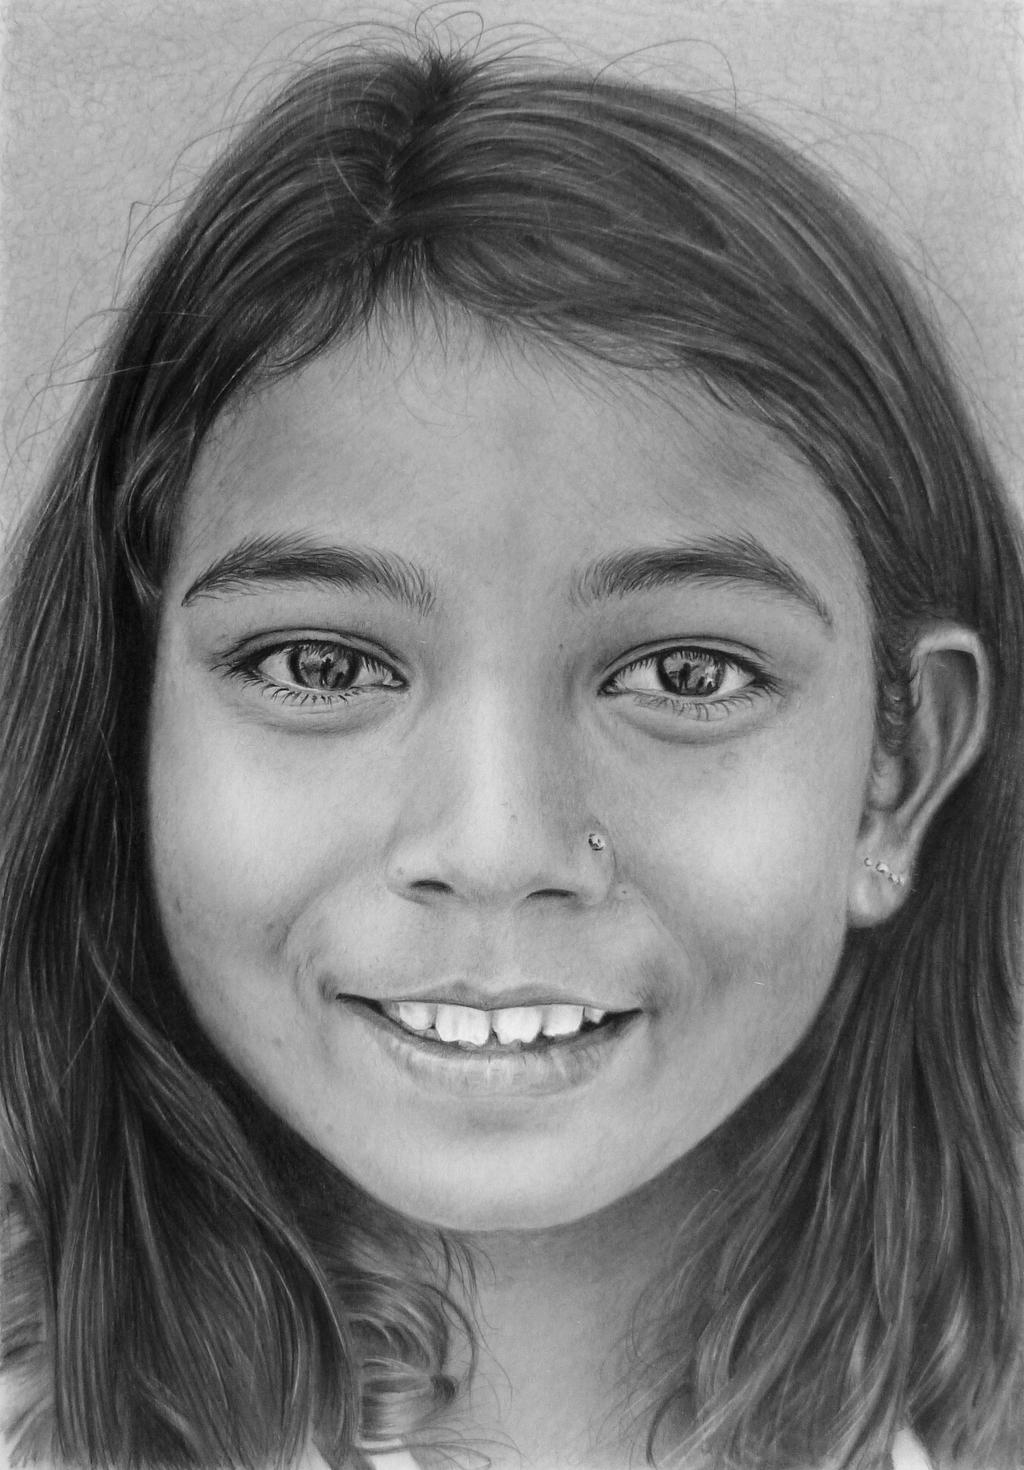 Pencil portrait of a young Indian girl by LateStarter63